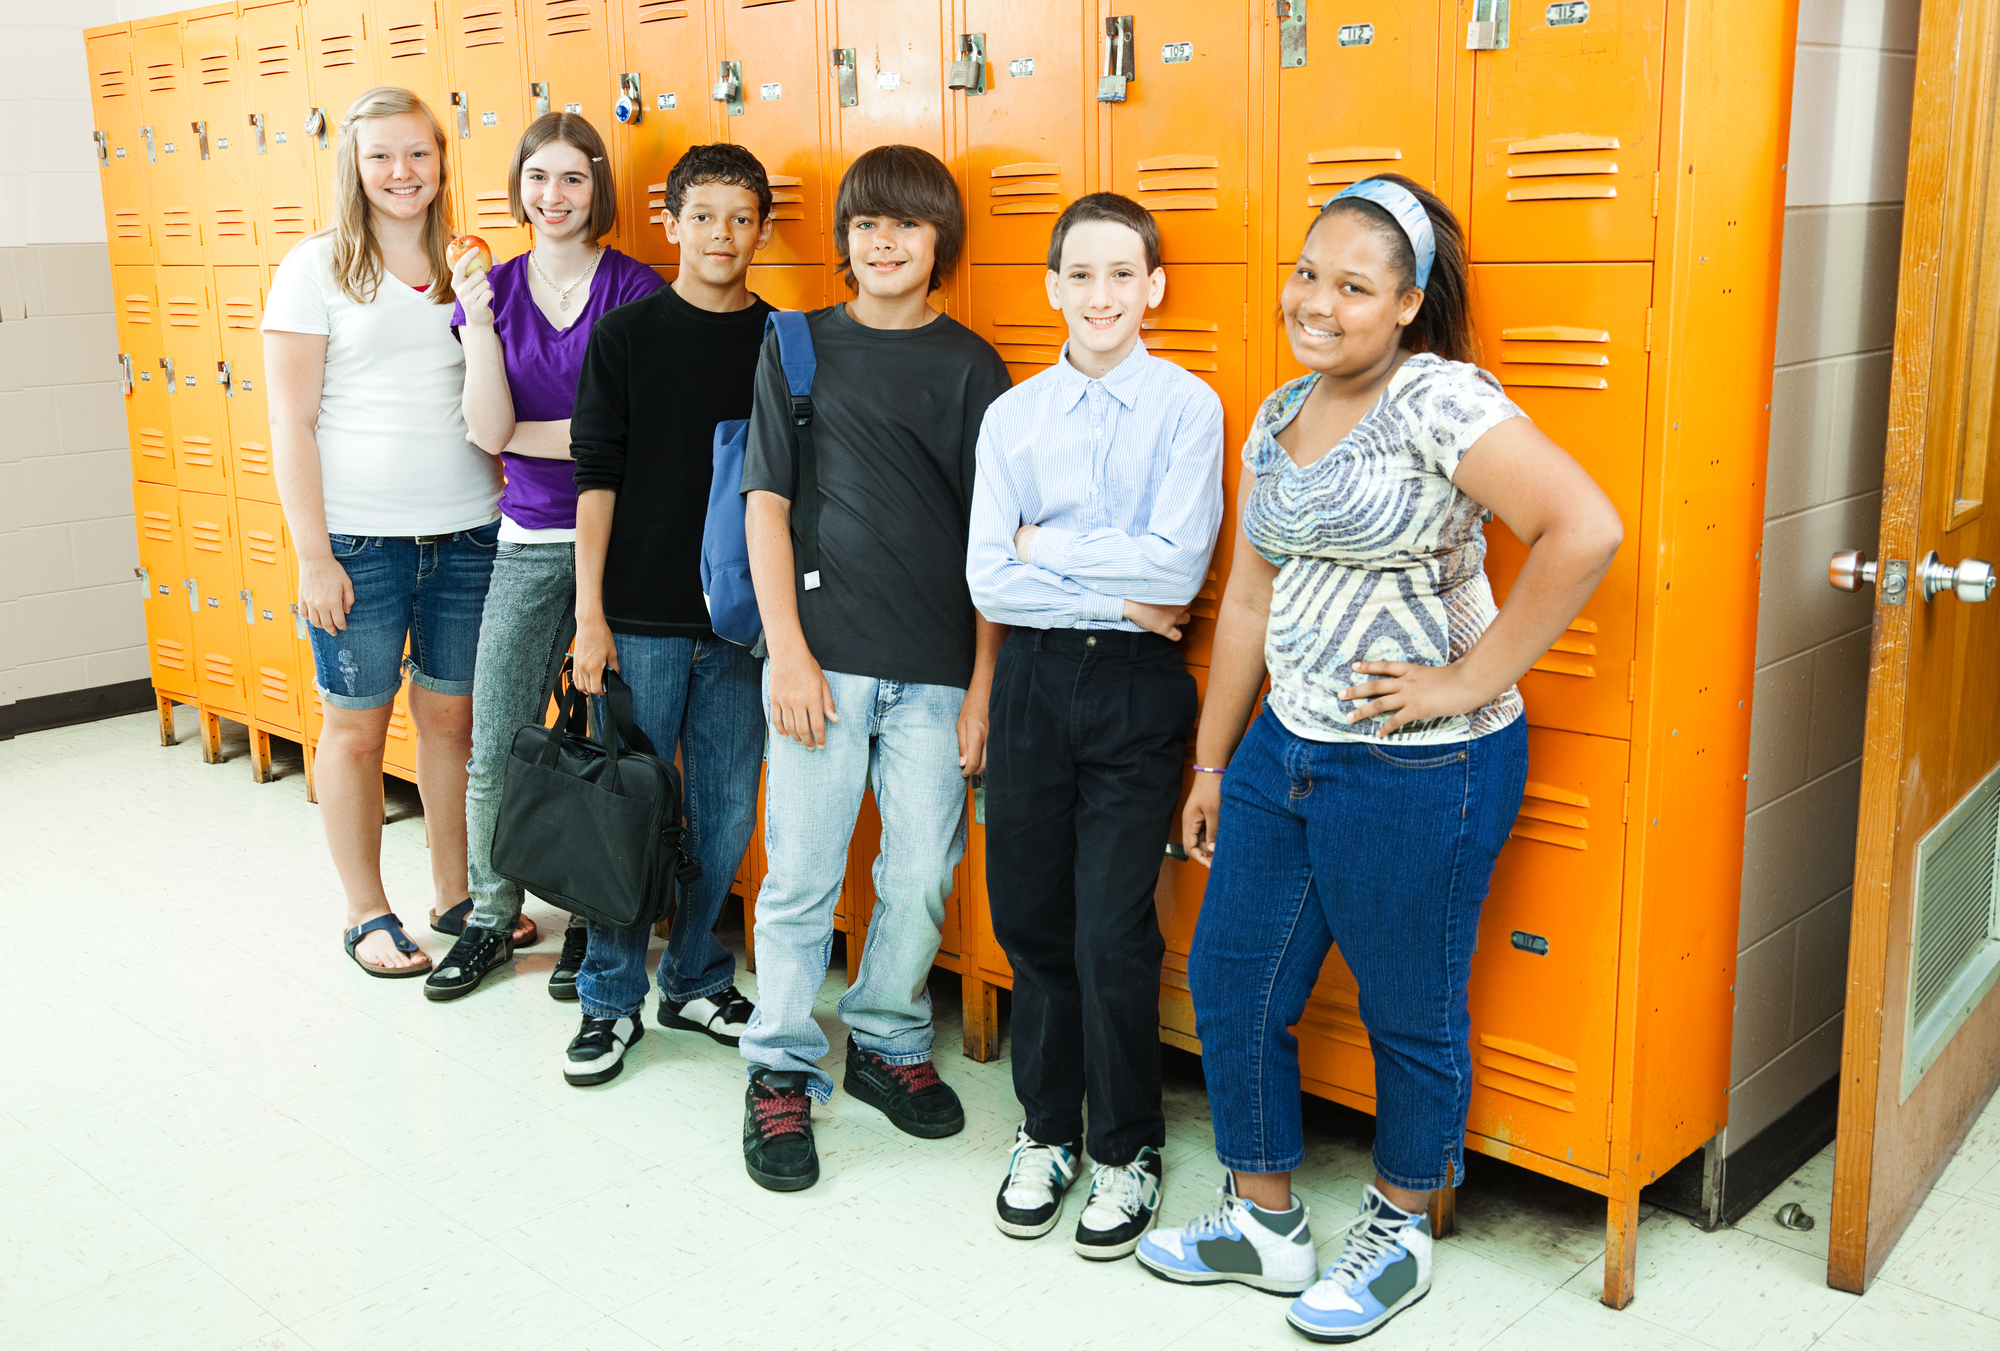 Group of teens standing in front of a row of lockers